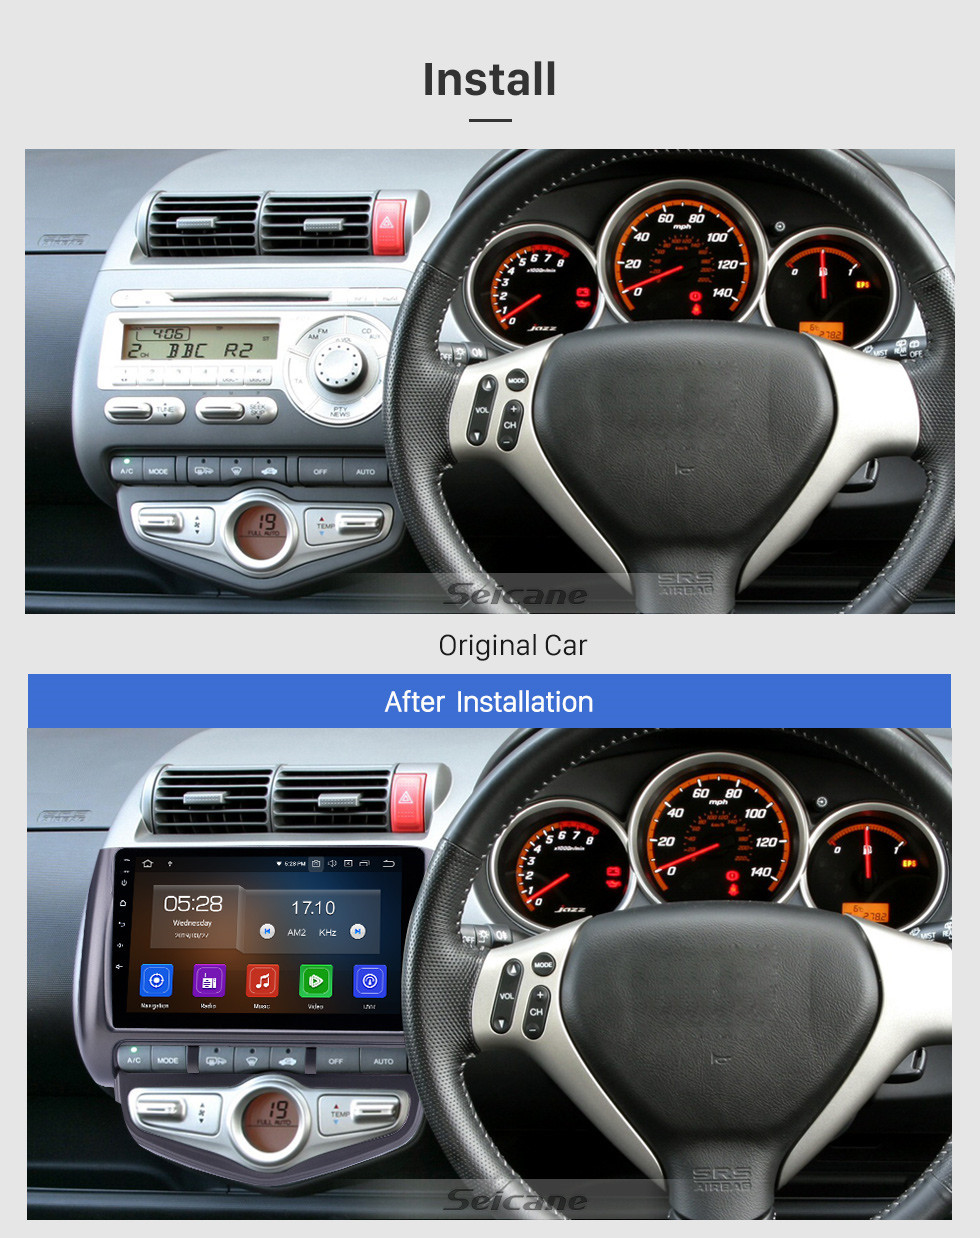 Seicane Android 10.0 9 inch GPS Navigation Radio for 2006 Honda Jazz City Auto AC RHD with HD Touchscreen Carplay AUX Bluetooth support DVR TPMS